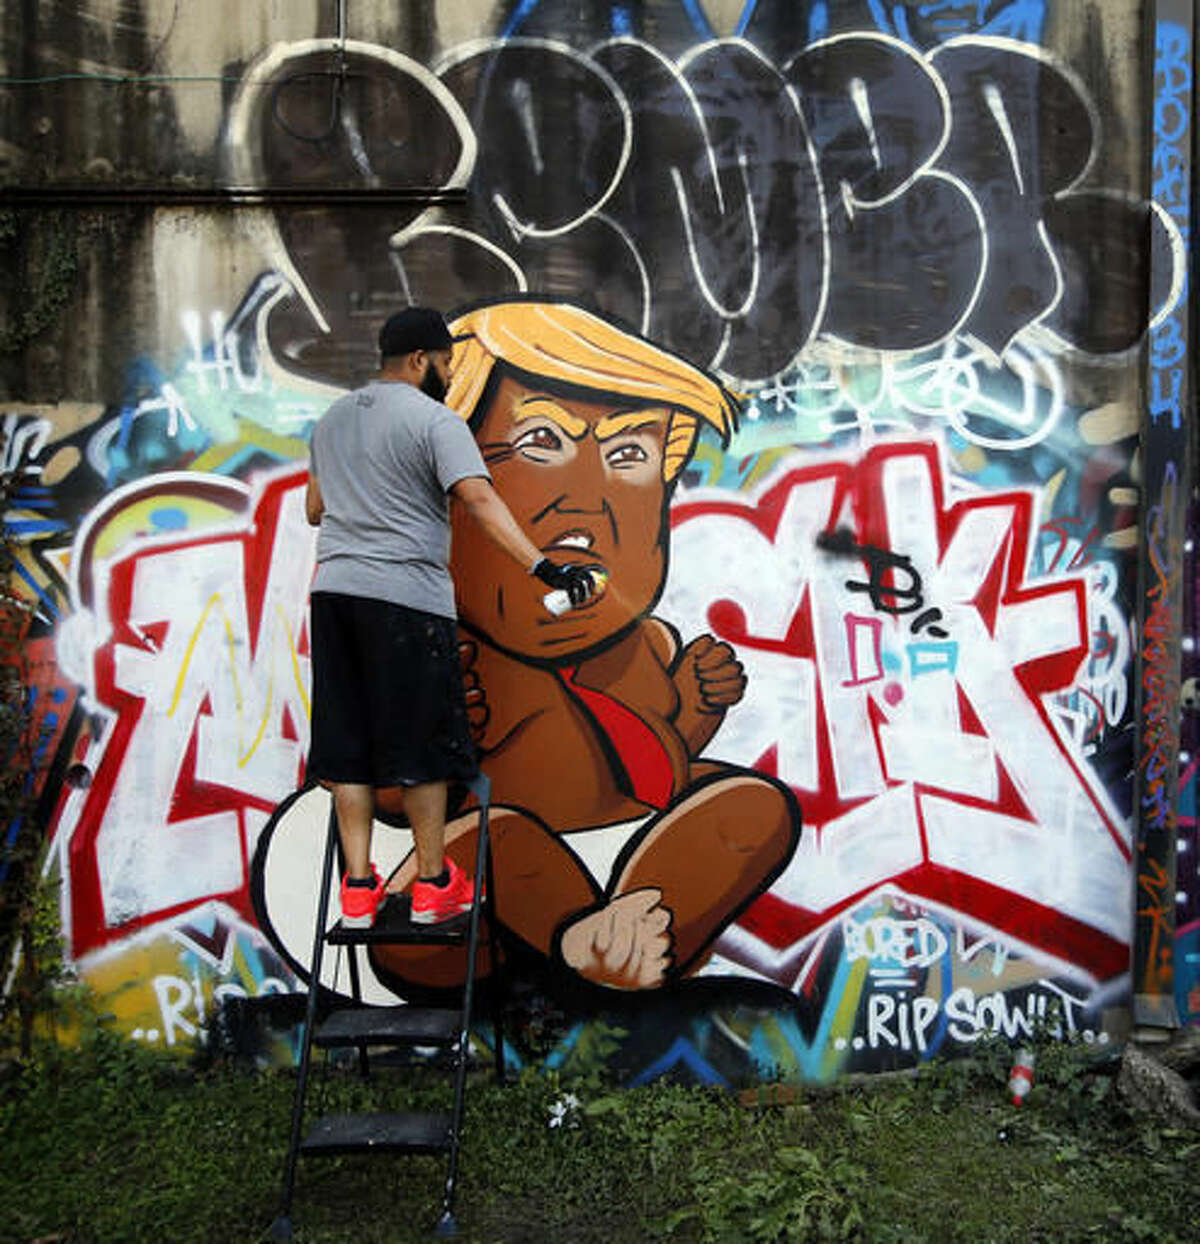 In a Saturday, Nov. 12, 2016 photo, Dallas artist Jeremy Biggers clears his spray can as he paints a caricature of President-elect Donald Trump during GO PAINT DAY at the Fabrication Yard in Dallas. This is only the third time the realism painter has created artwork with a spray can. The two days are dedicated to celebrating hip hop history month with paint, music, dancing and community. (Tom Fox/The Dallas Morning News via AP)